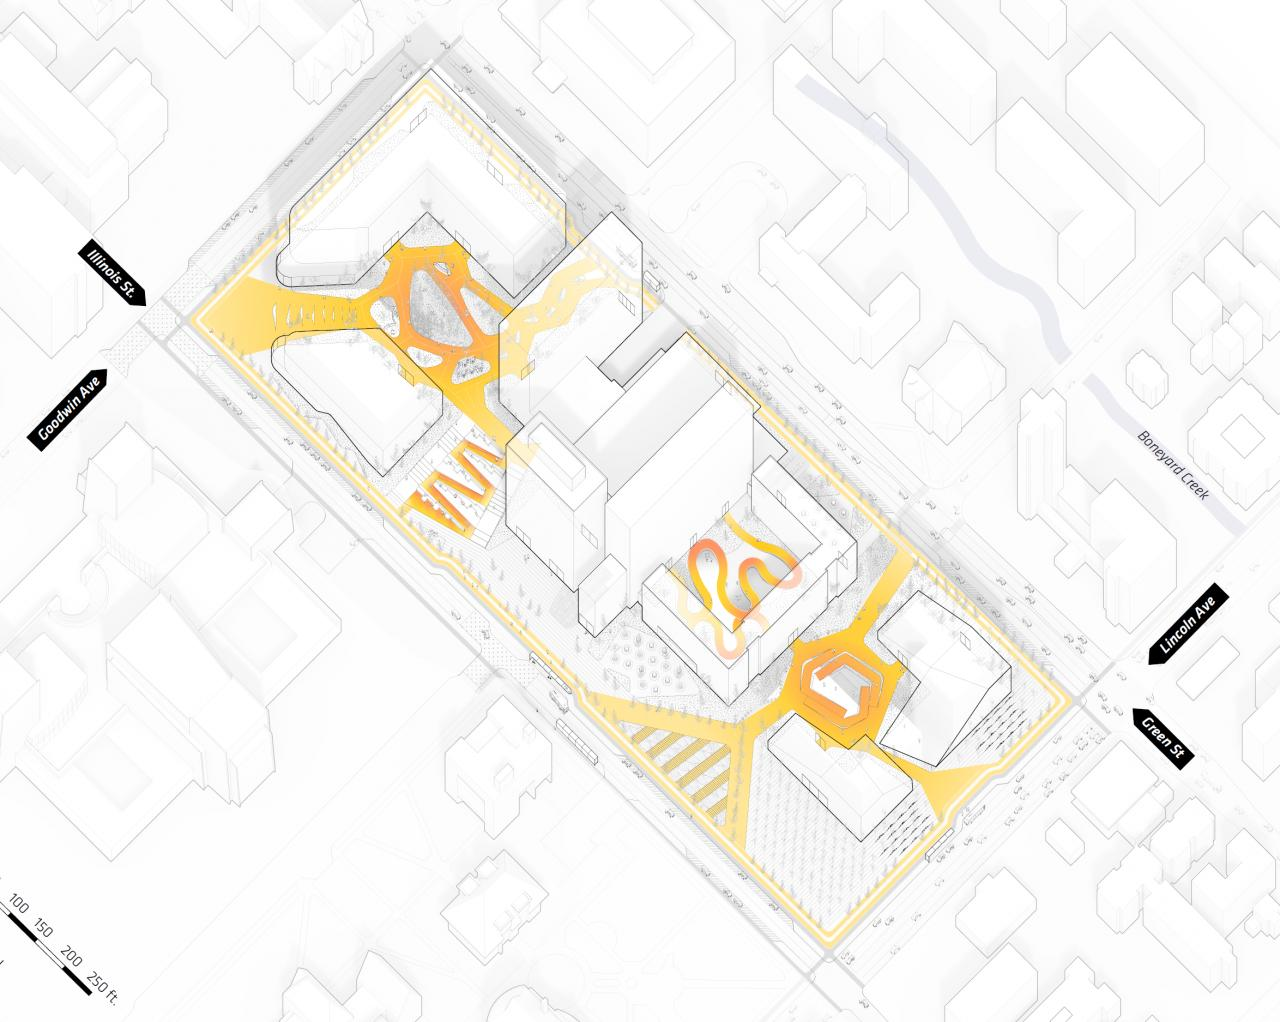 Oblique site drawings with orange and yellow highlights